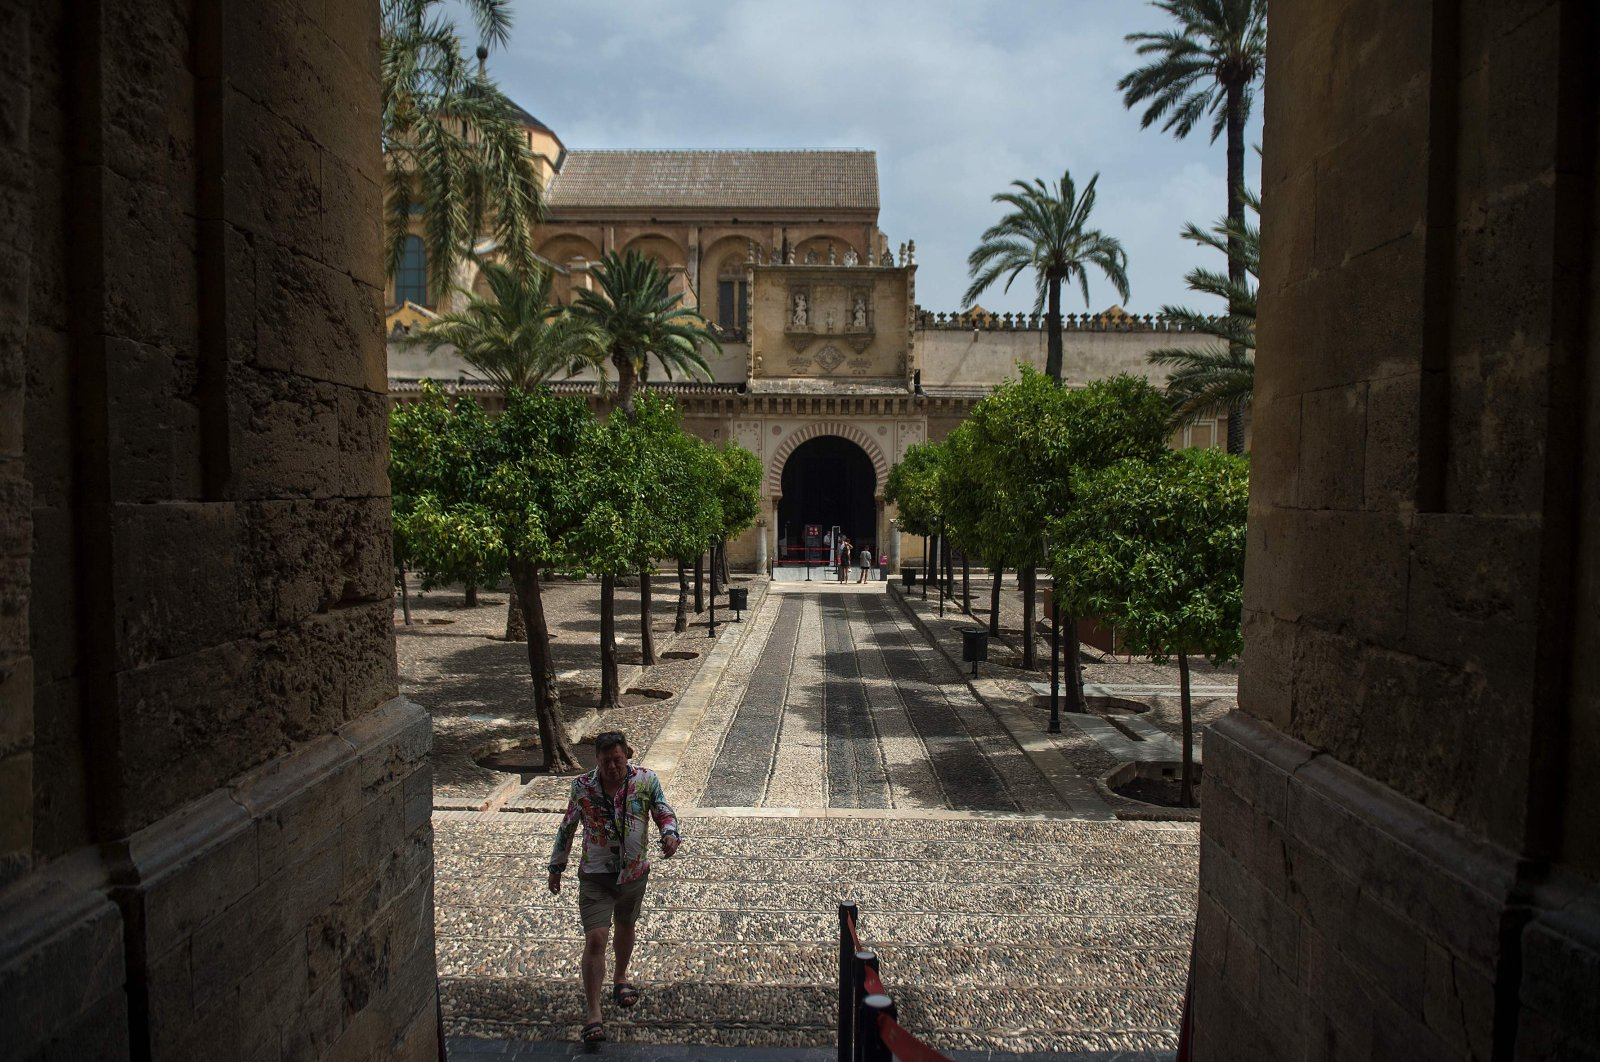 A tourist visits the Patio de los Naranjos (Garden of oranges) at The Mezquita (mosque) in Cordoba after restrictions were lifted following a national lockdown put in place to fight the coronavirus pandemic, Cardoba, Spain, July 8, 2020. (AFP Photo)